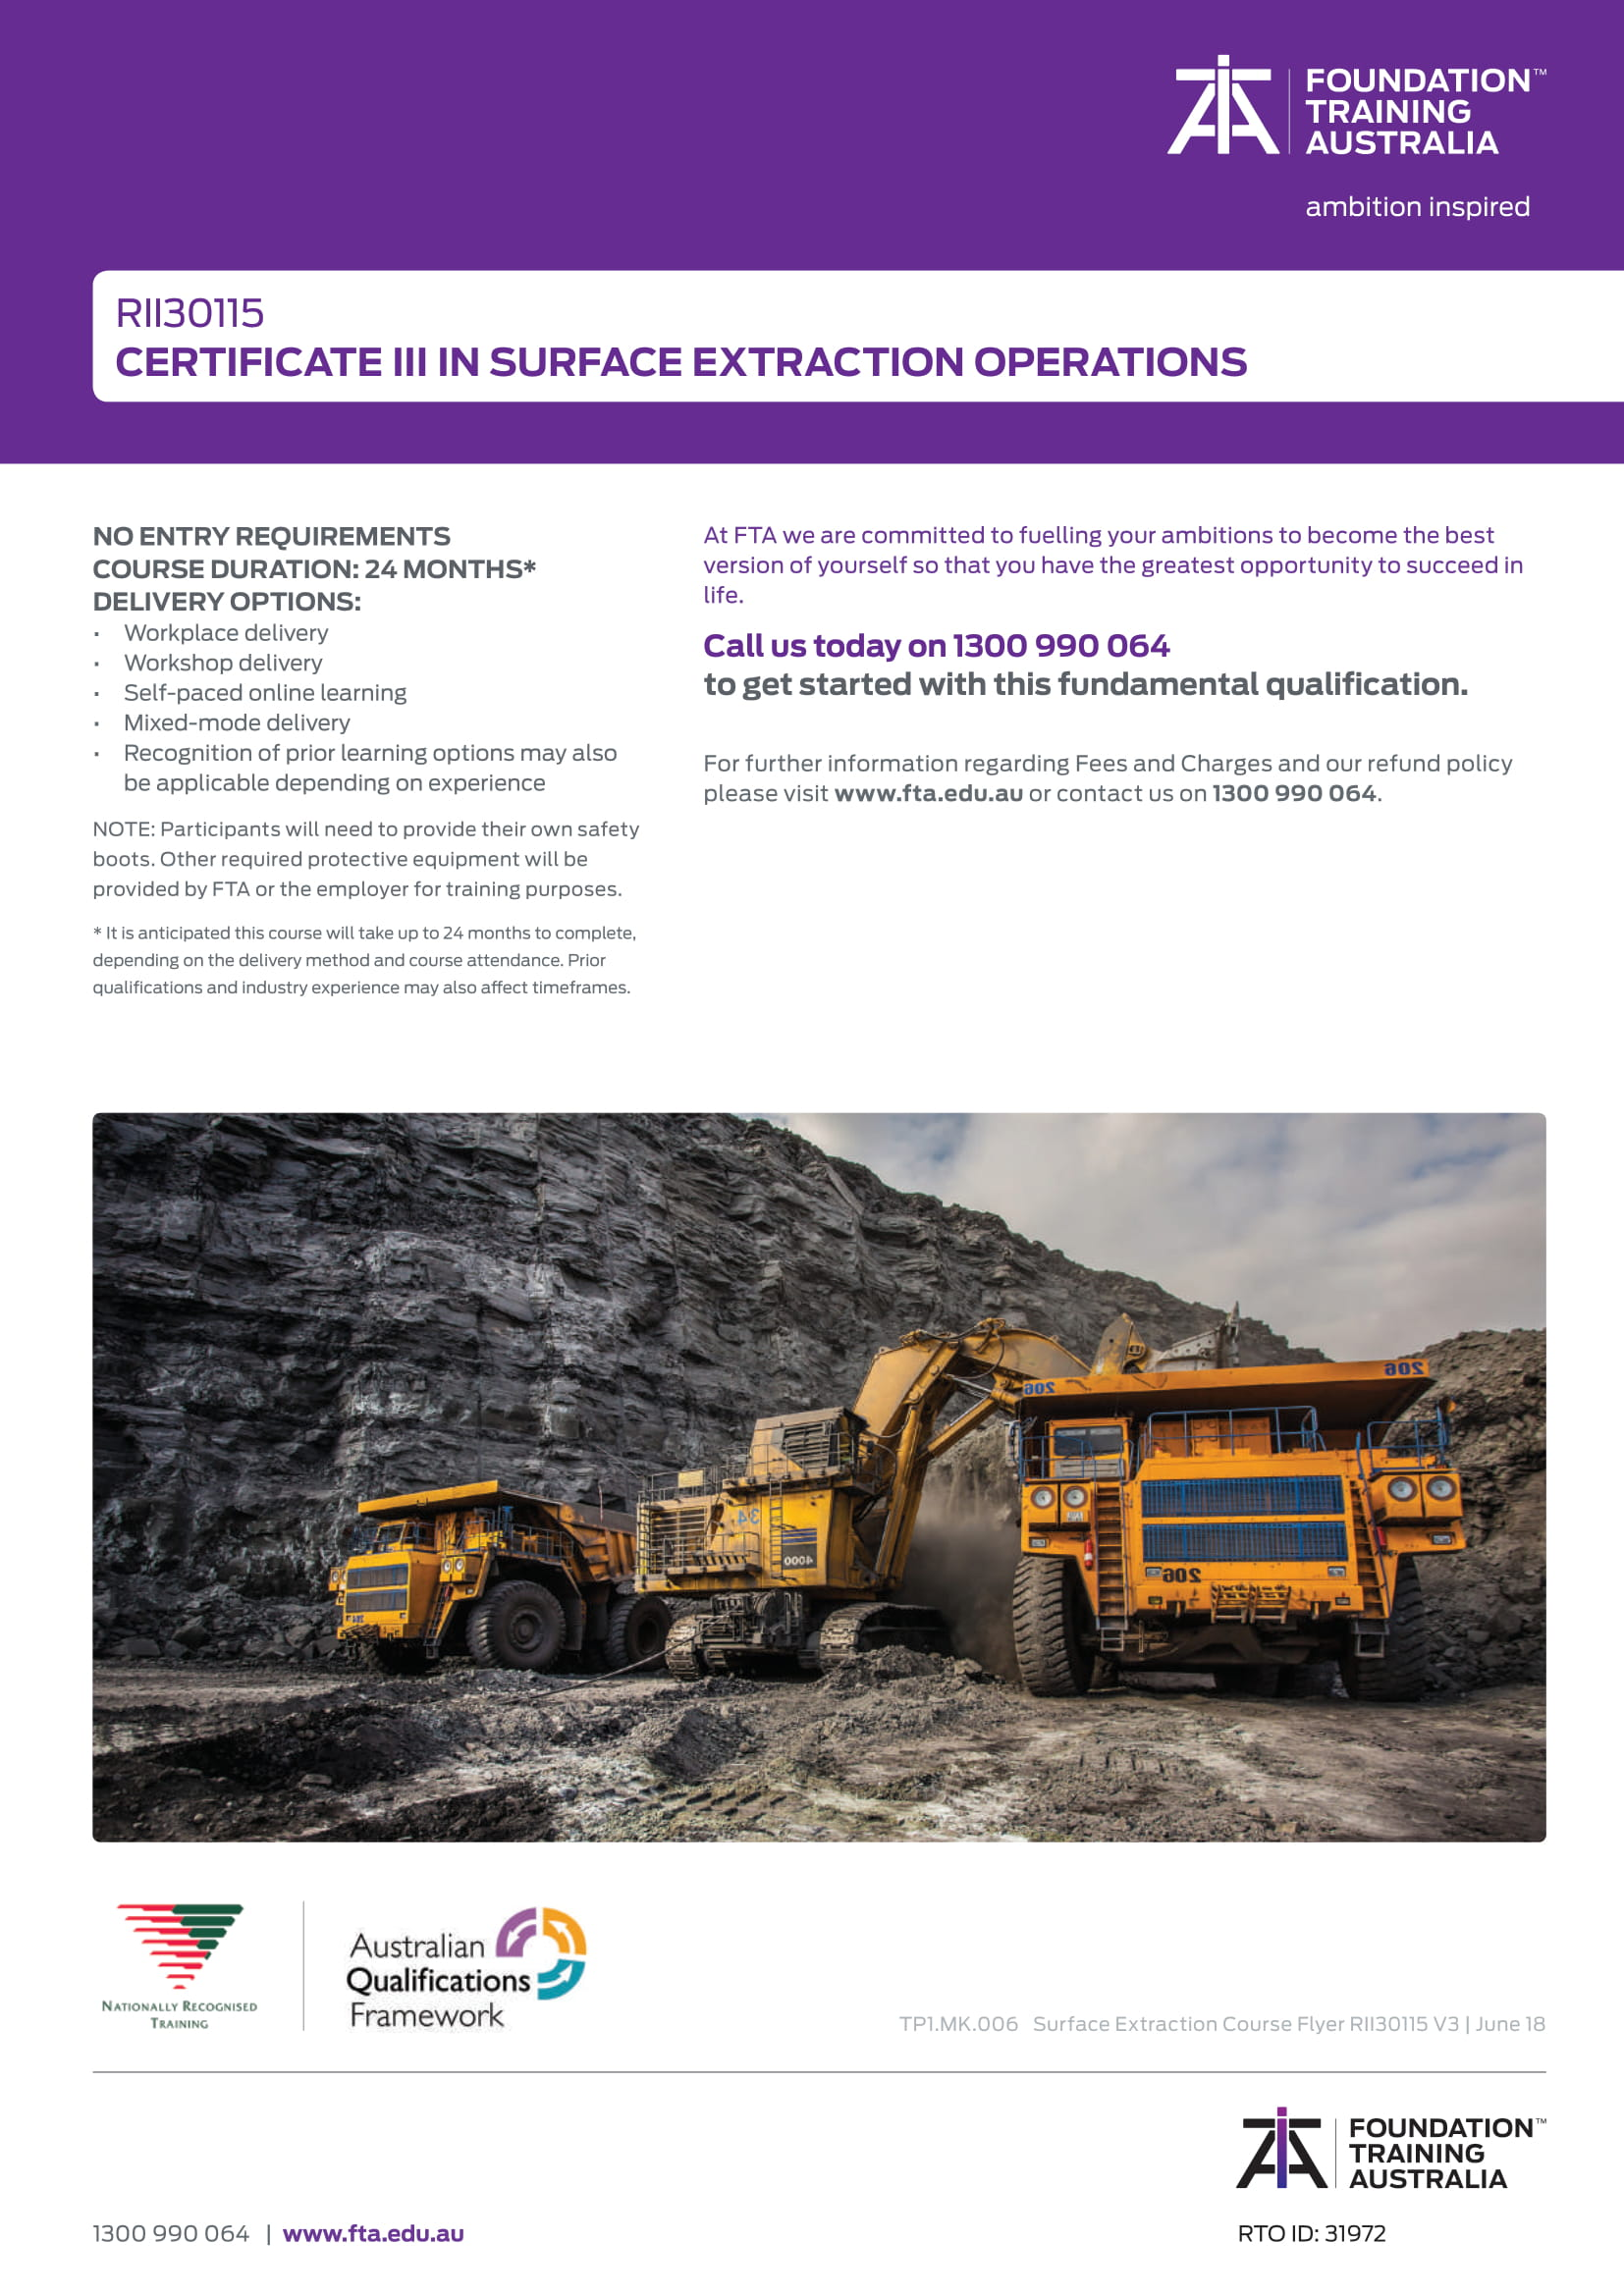 https://www.fta.edu.au/wp-content/uploads/2020/06/TP1.MK_.006-Certificate-III-in-Surface-Extraction-Operations-Course-Flyer-RII30115-V3-ilovepdf-compressed-2.jpg